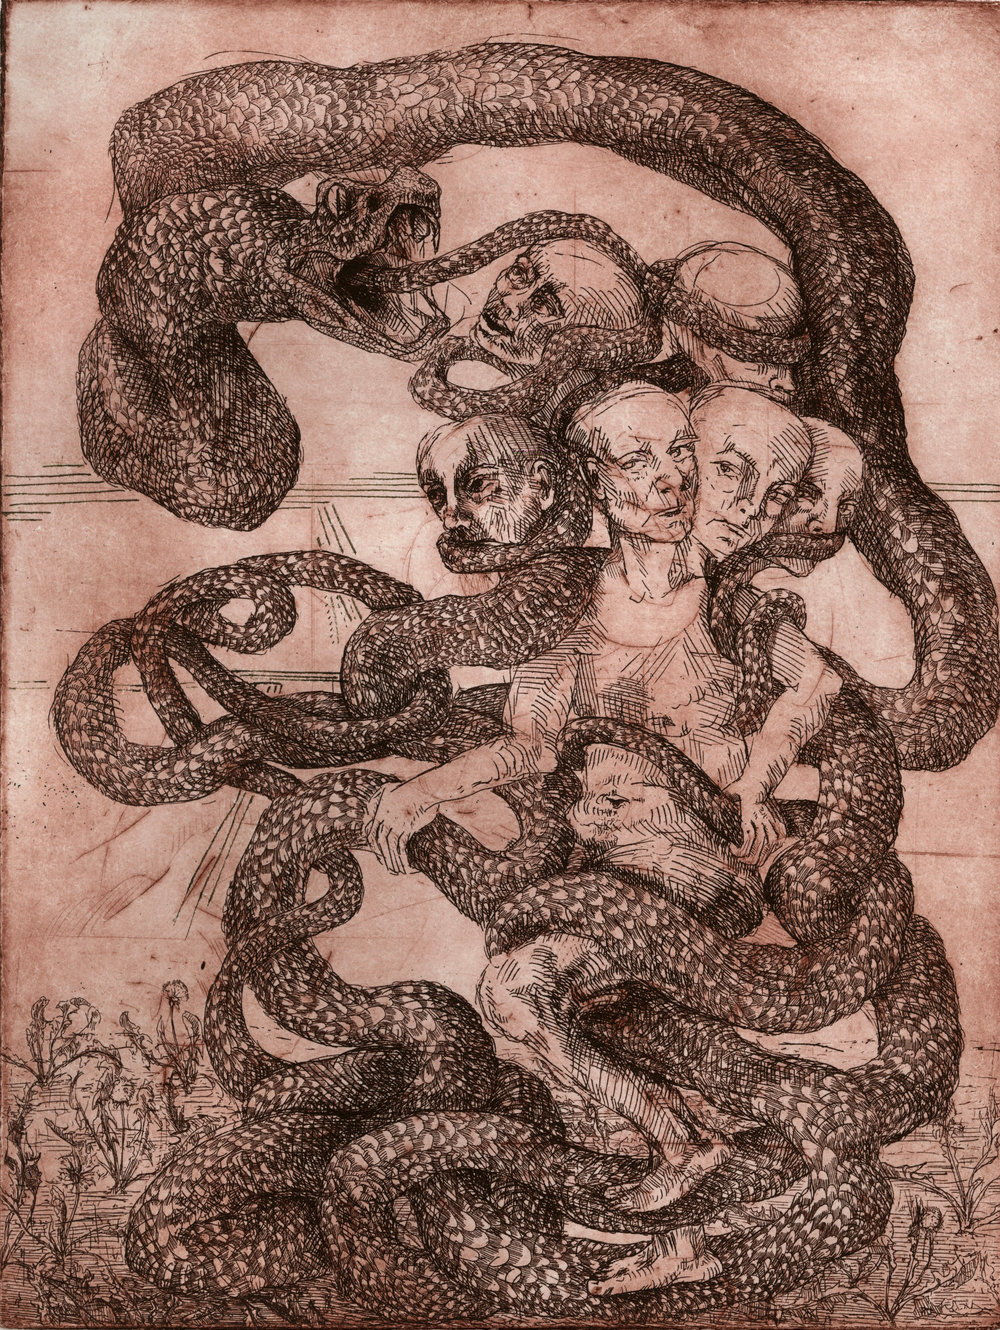 The Ouroboric - Etching for commission, responding to patron's description of the ouroborus as a self-isolating and anxious mind. Dandelions sprout in the otherwise arid ground, offering a potential escape route...